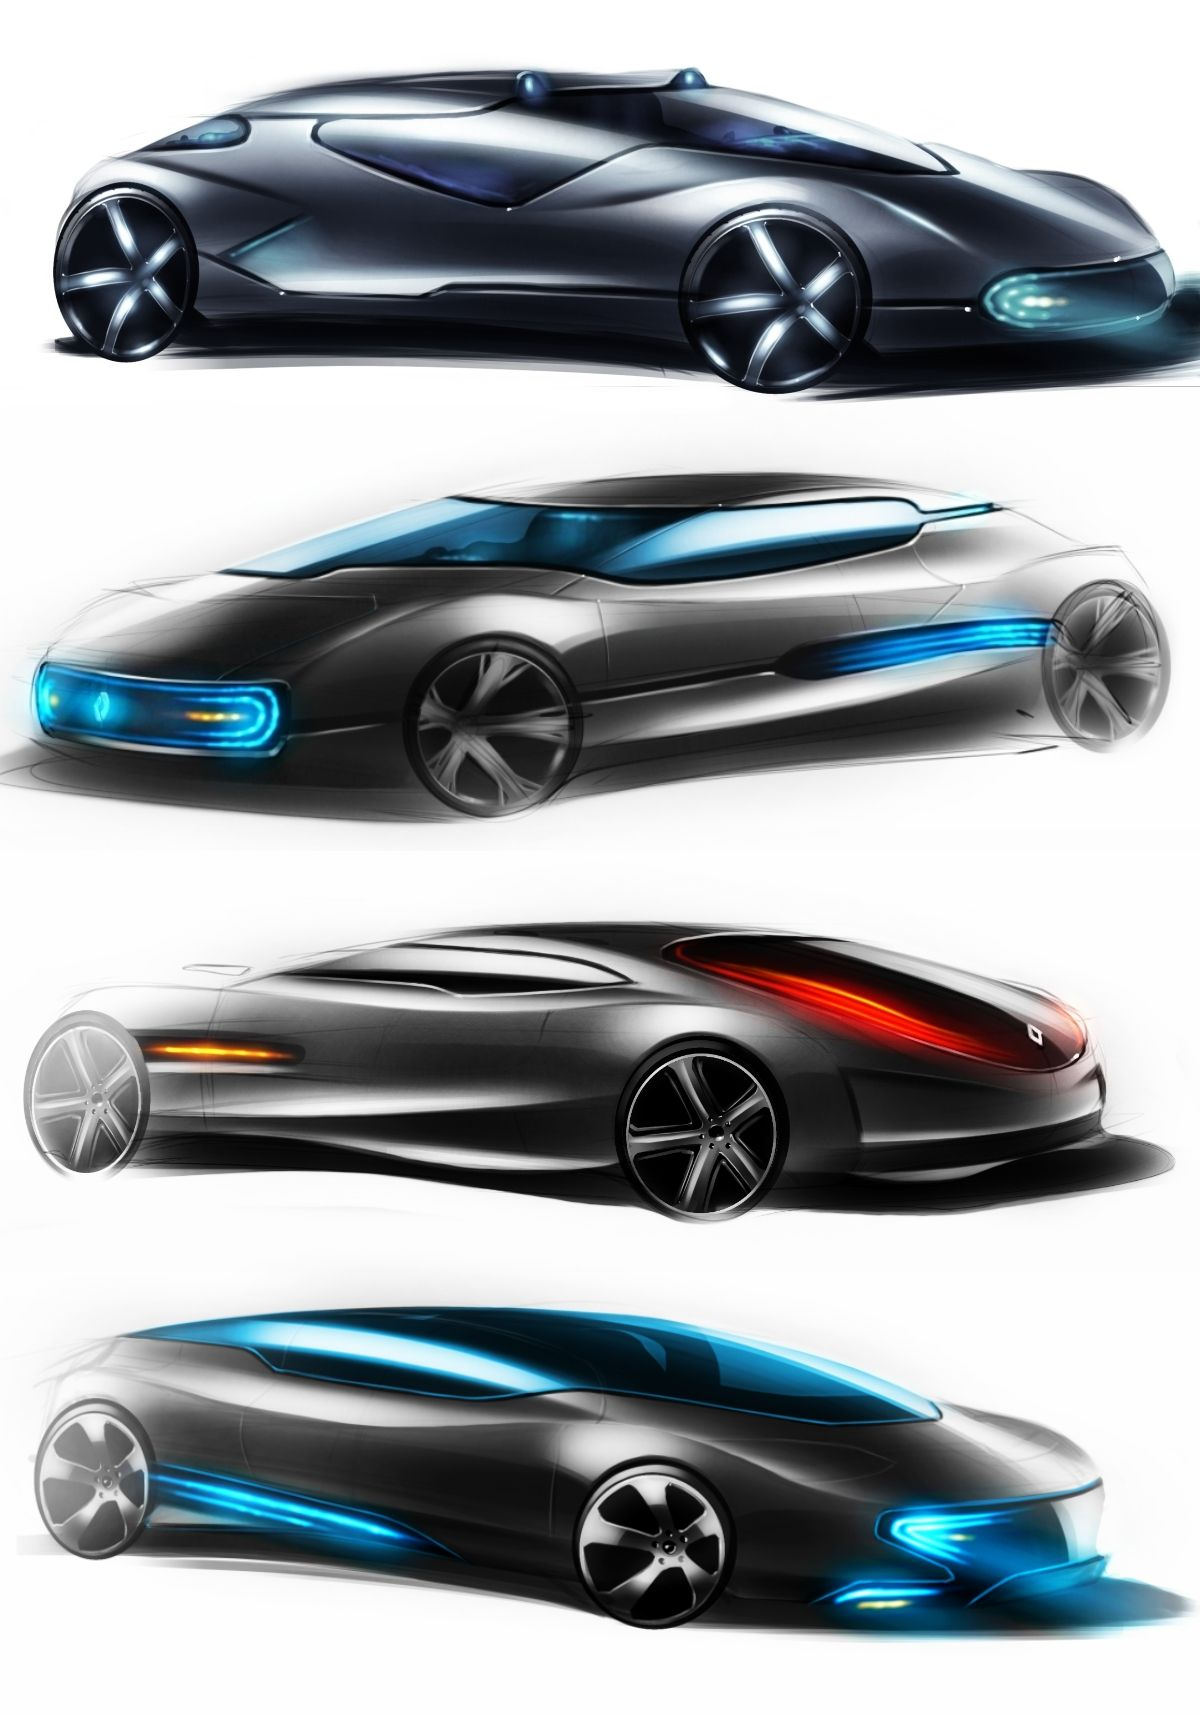 futuristic cars by paulo78